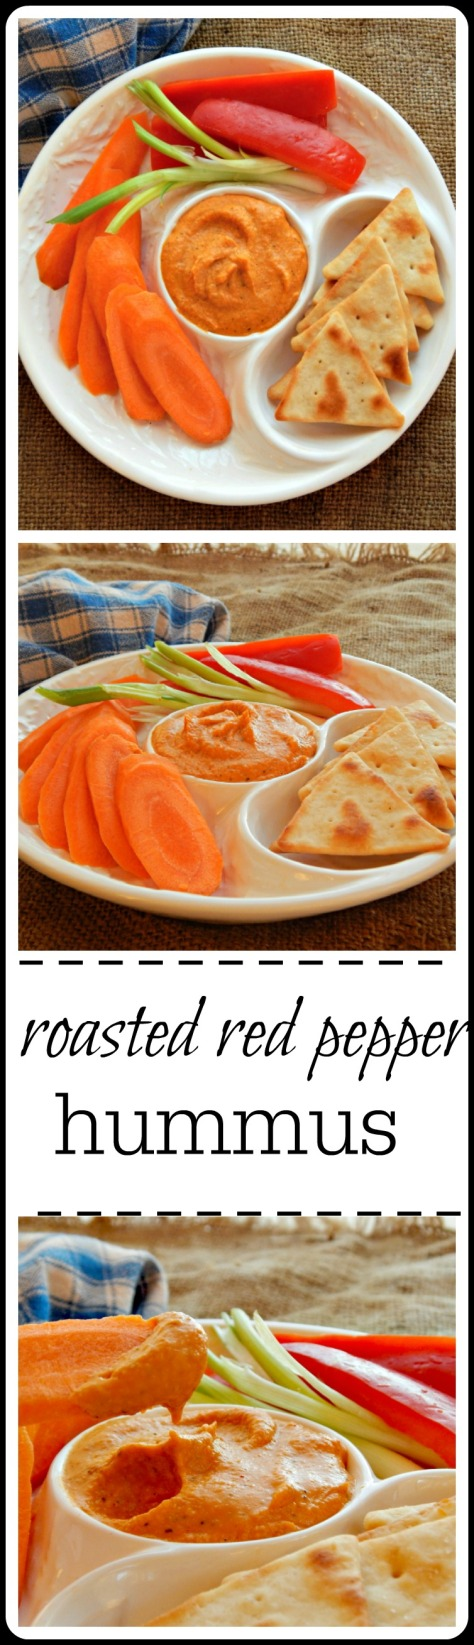 Roasted Red Pepper Hummus: So good and it has just a little extra sumpin' from the smoked paprika! Easy and minutes to make.